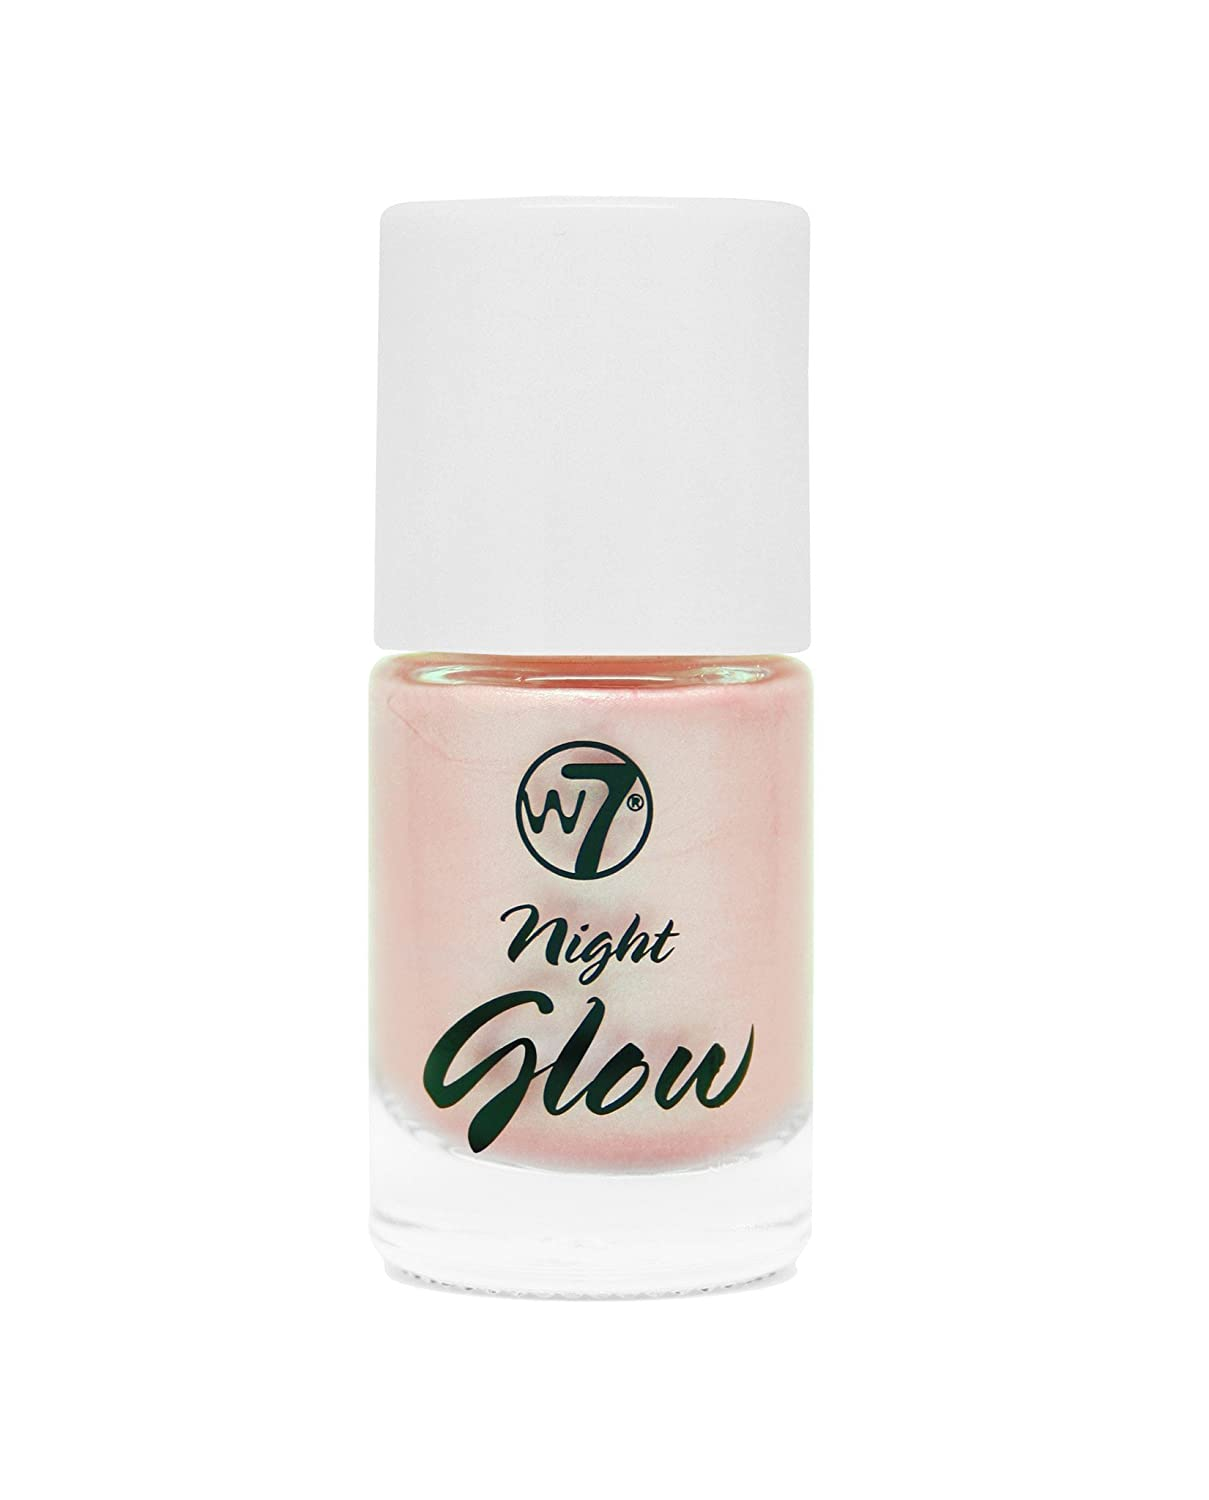 W7 NIGHT GLOW HIGHTLIGHT & ILLUMINATE 10ml by W7